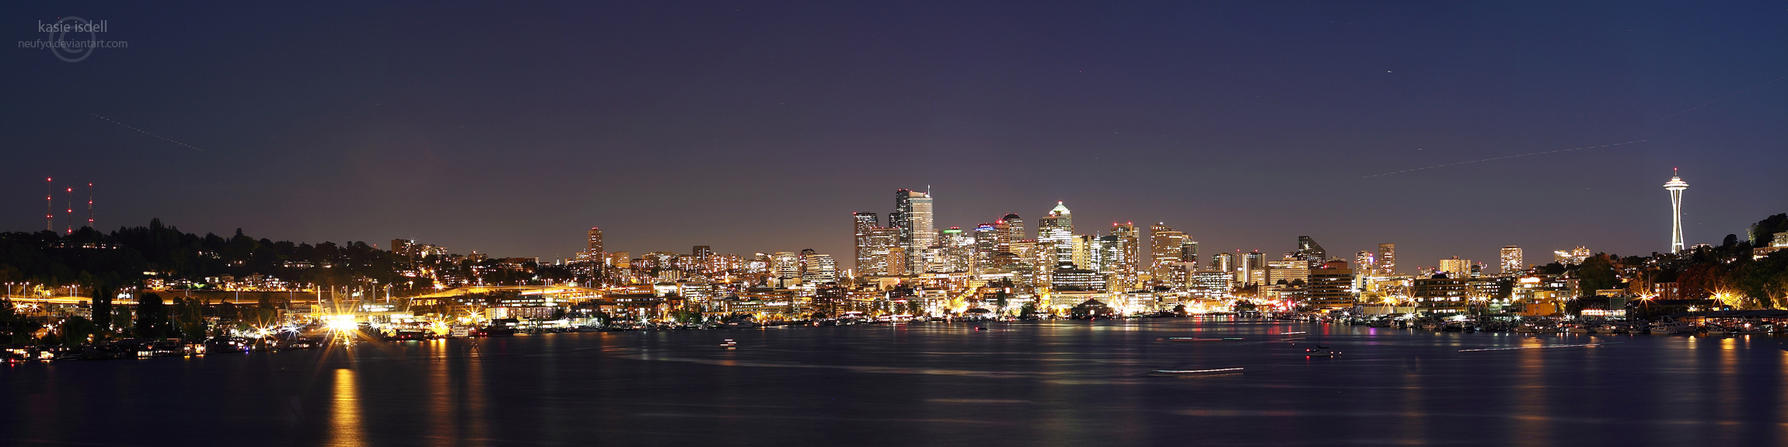 Seattle skyline by kasieisdell